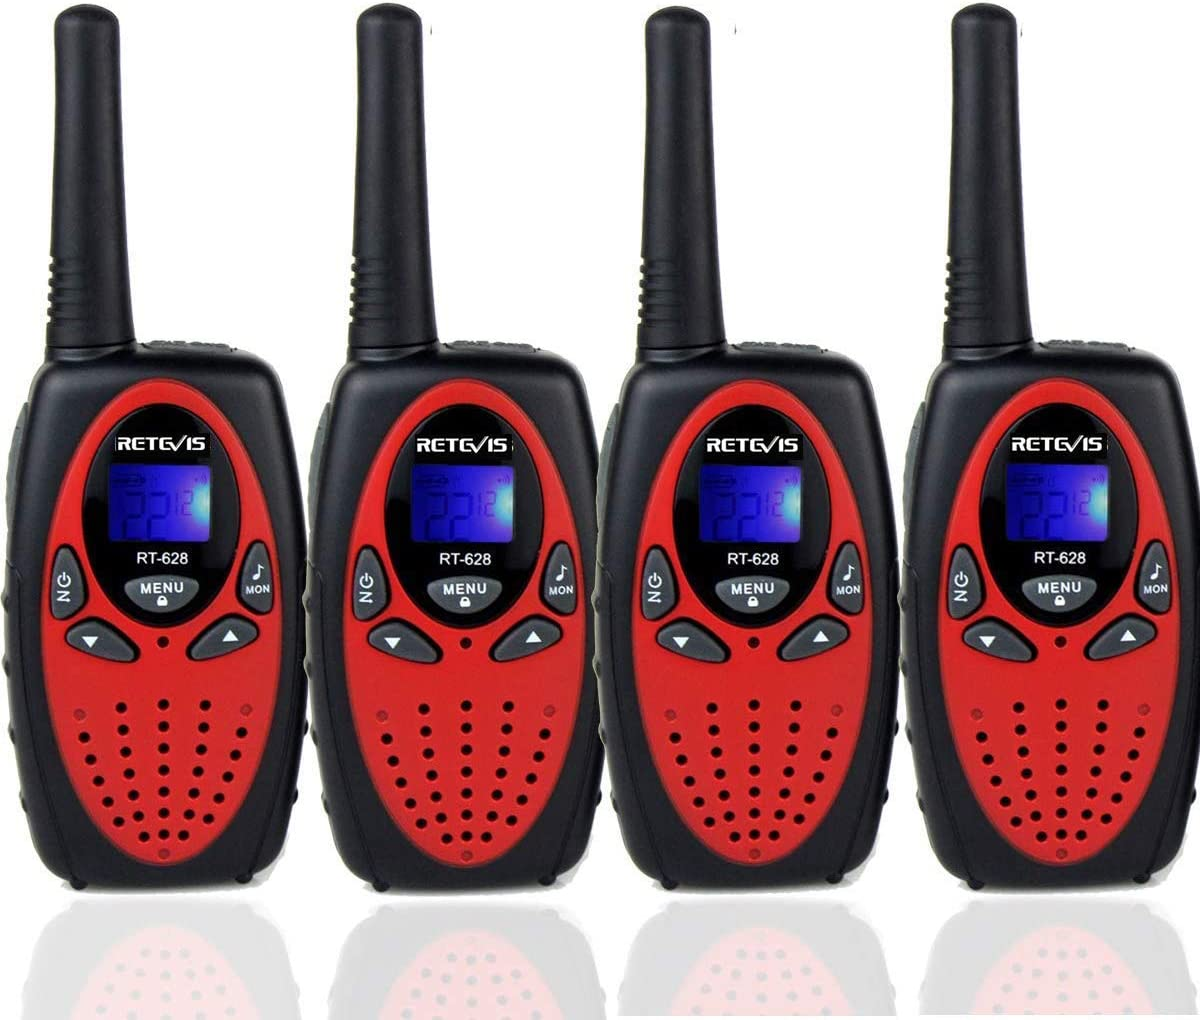 Retevis RT628 Walkie Talkies for Kids,22 Channels 2 Way Radio Long Range Toy for 4-12 Year Old Boys Girls,Handheld Two Way Radio,Kids Toy for Outside, Camping, Hiking 4 Pack,Red